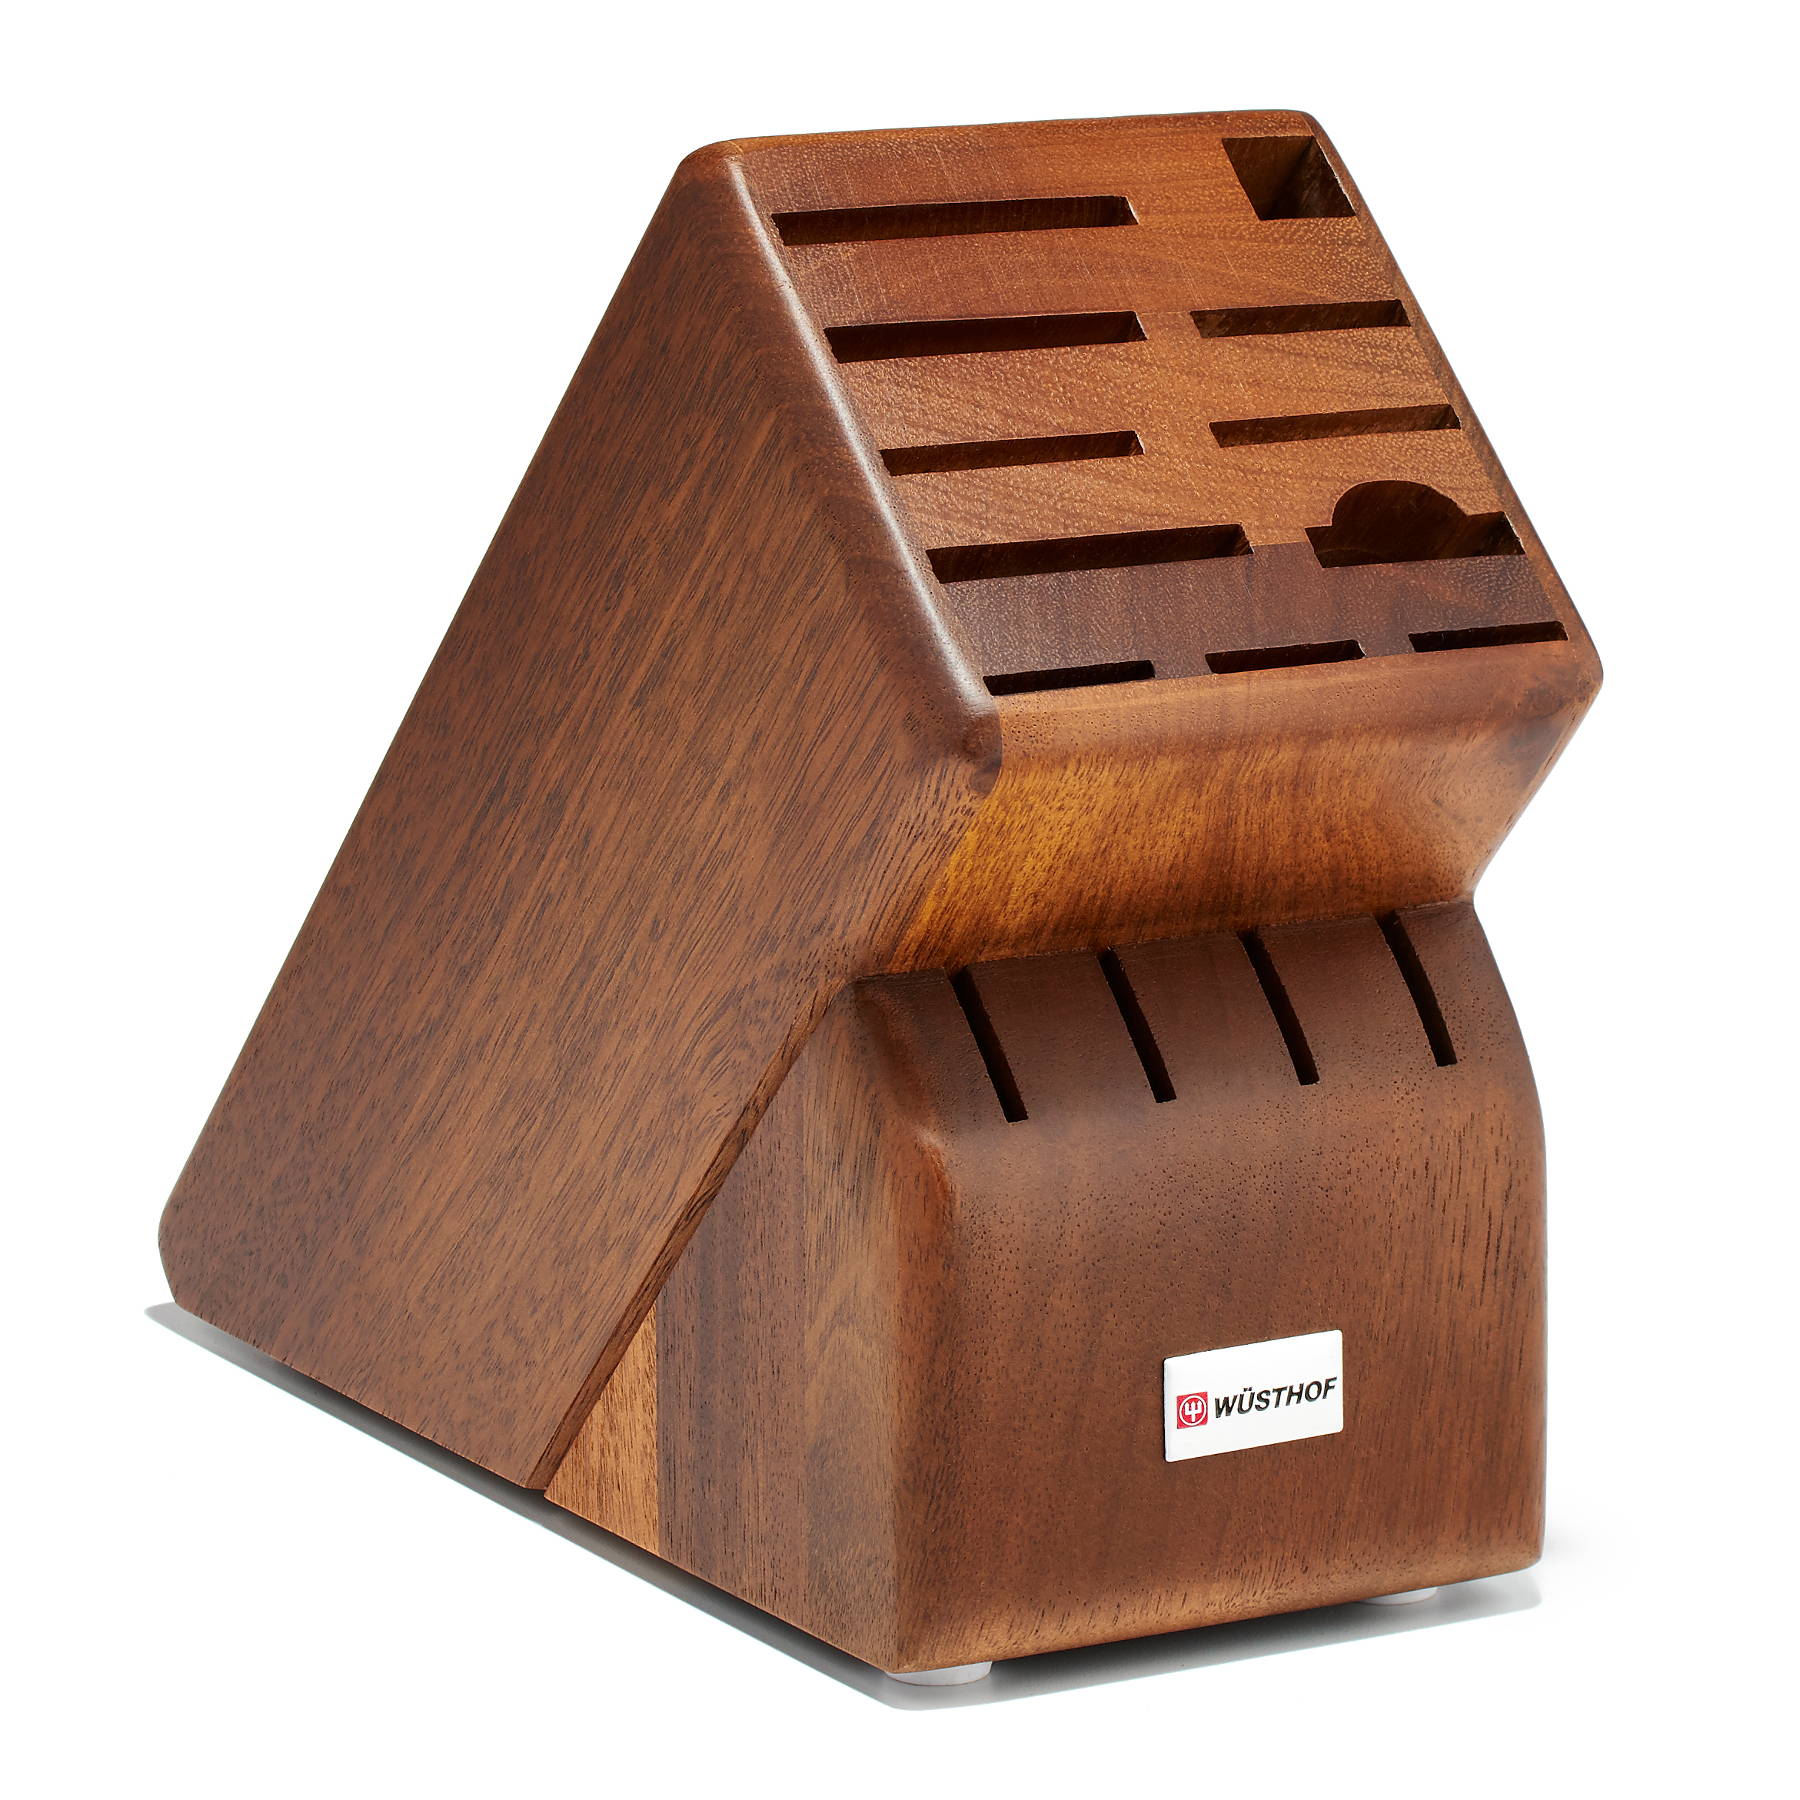 Wusthof 15 Slot Walnut Knife Storage Block